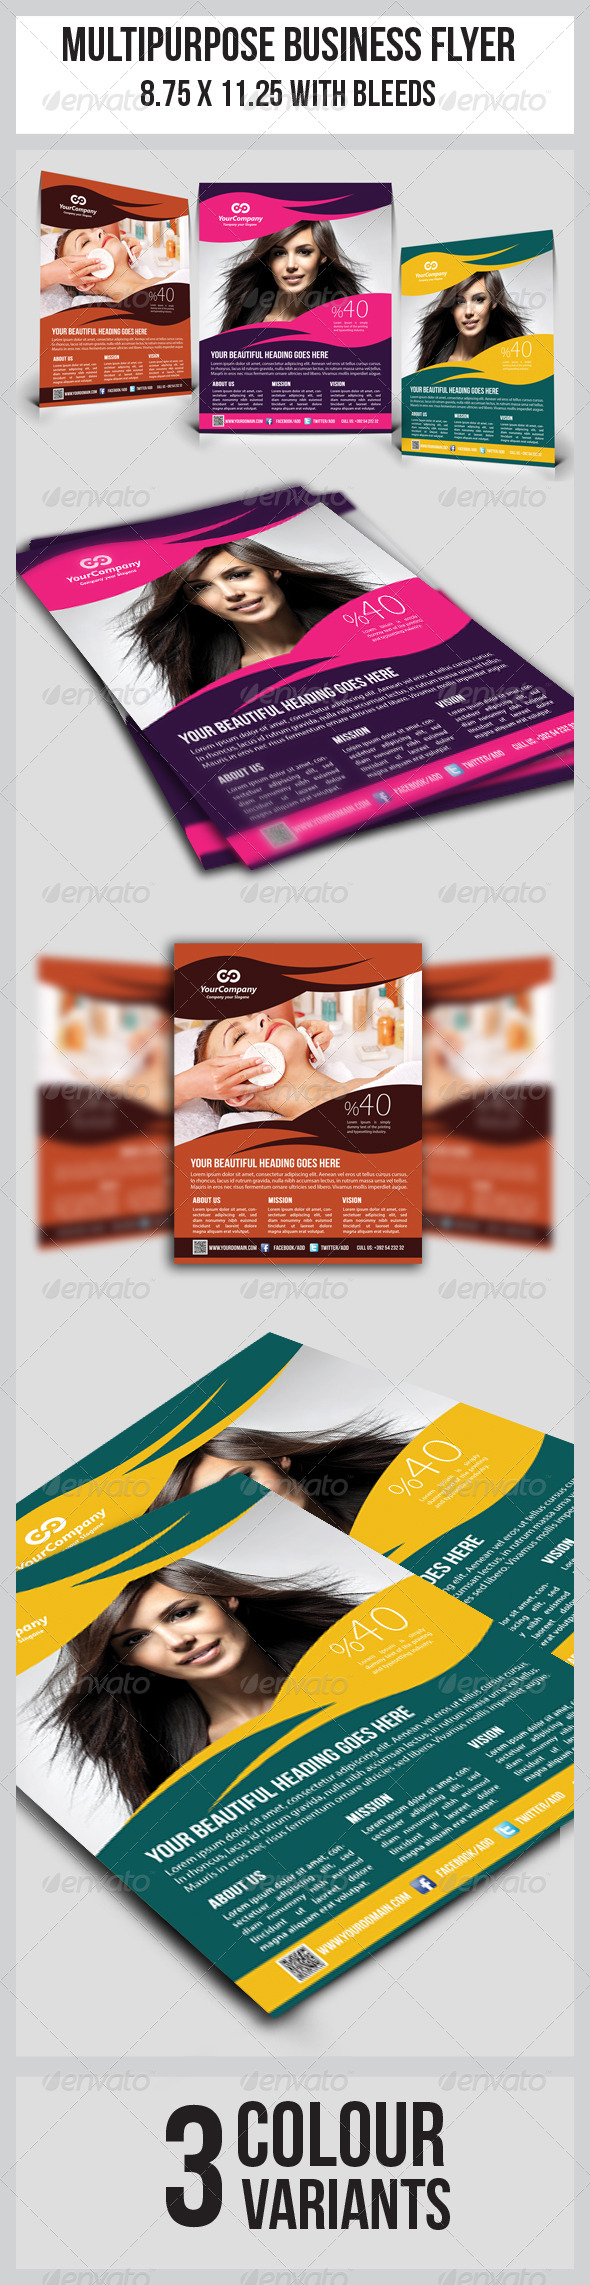 Hair & Beauty Salon Business Flyer - Corporate Flyers